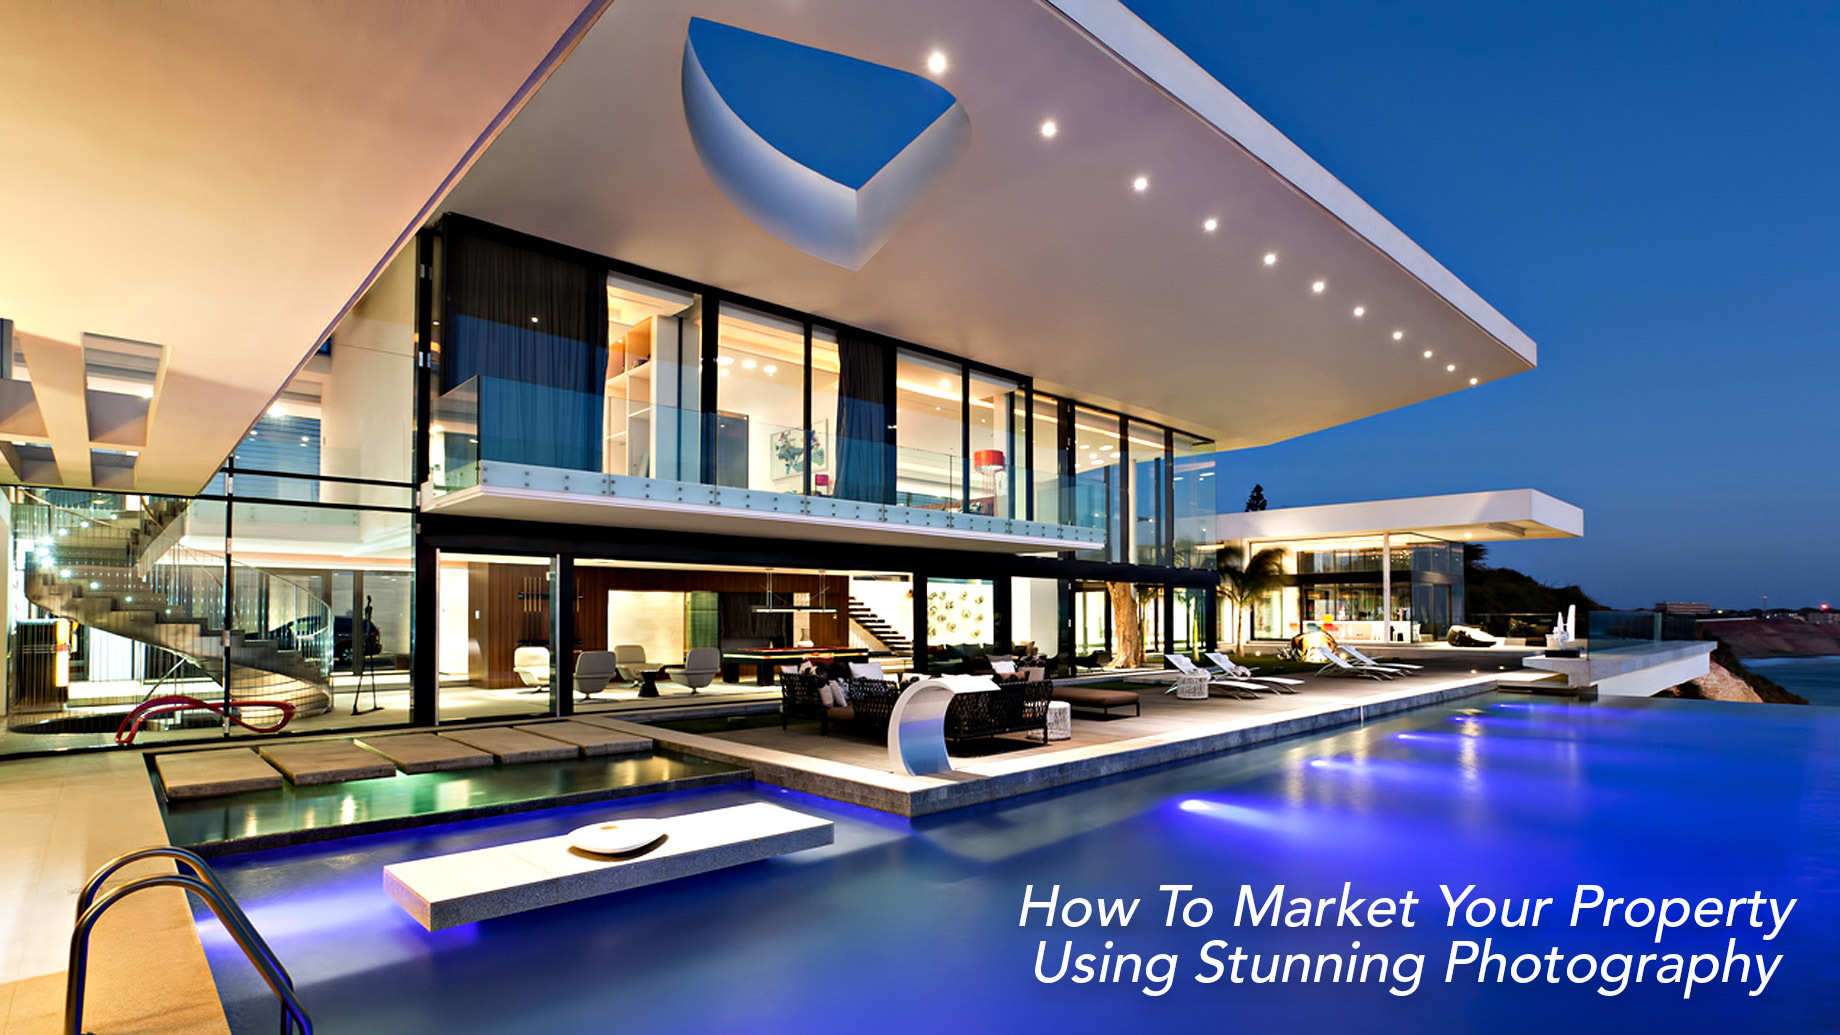 How To Market Your Property Using Stunning Photography